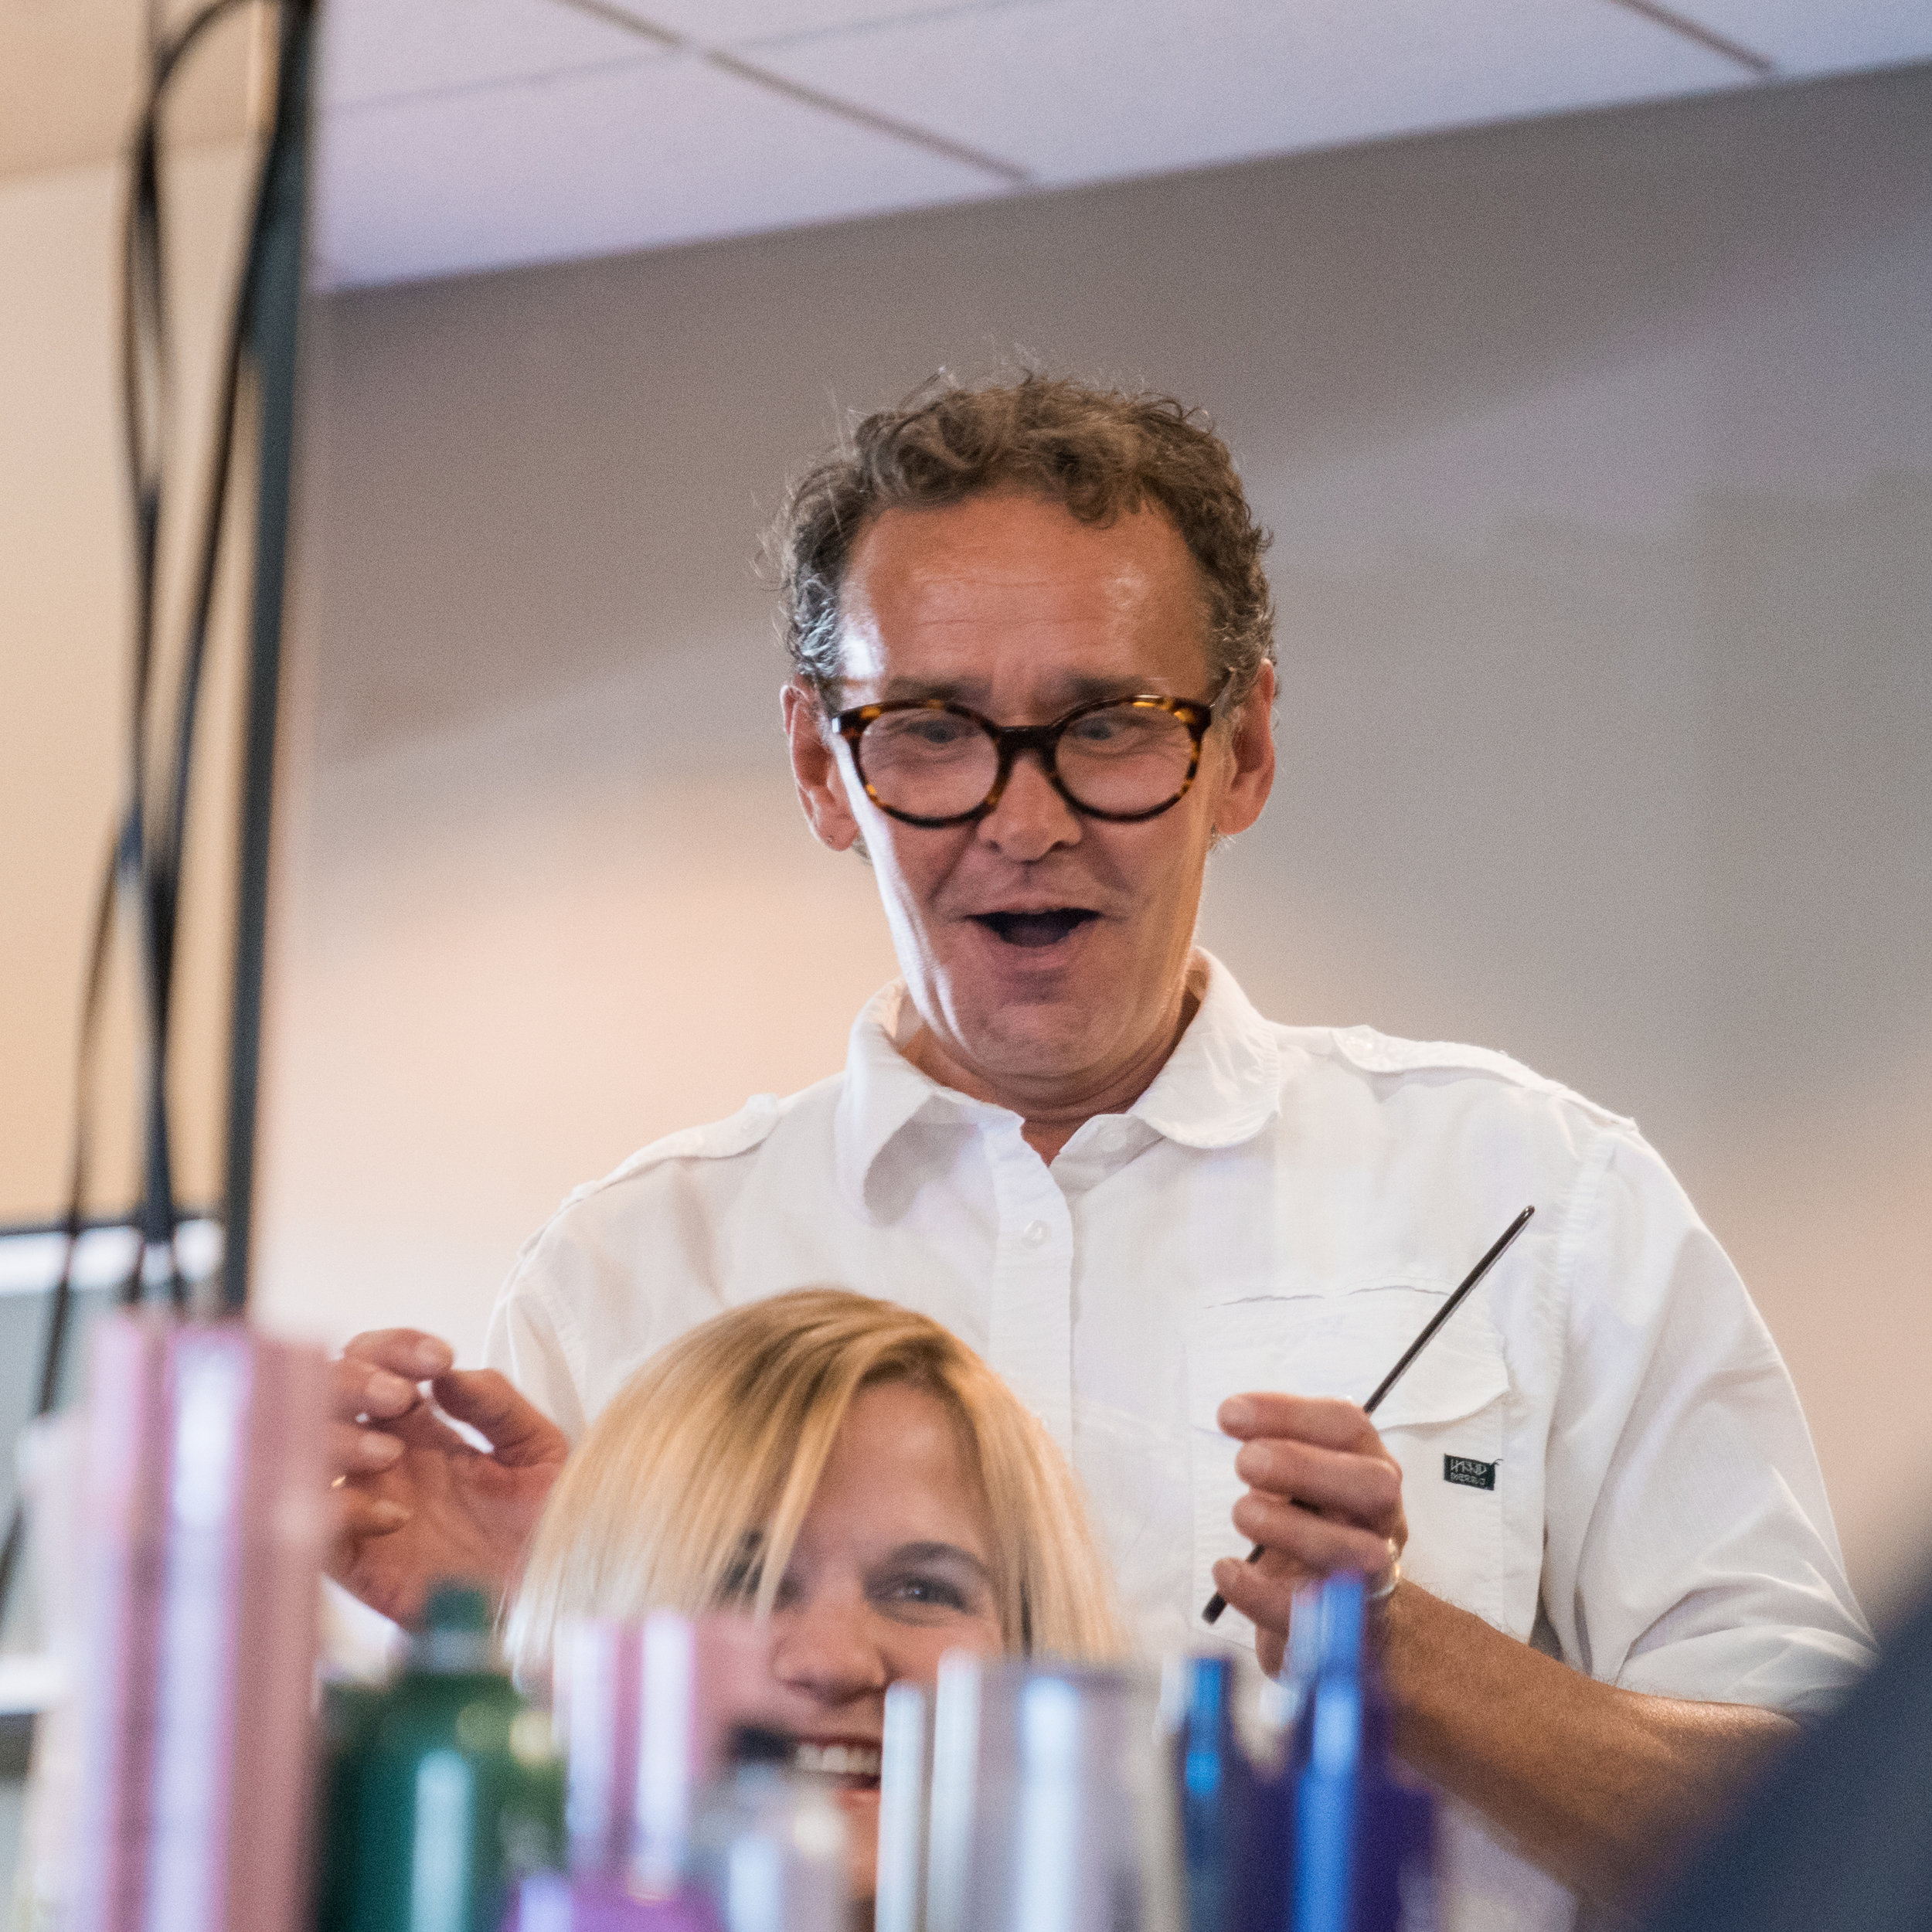 "Jon McGhee  Stylist  After giving his first haircut at seven years old, Jon was on his way to a career is the industry. He attended Cosmetology school after high school and had advanced training in London and Pittsburgh. With a career spanning over 35 years, his experience and training is vast. He has seen many trends come and go, but still looks forward to coming to the salon. He has been a member of The Laura Gregory Salon team since its inception. Jon is our ""social director."" No matter whose chair you are in, chances are Jon will come by and say hello."